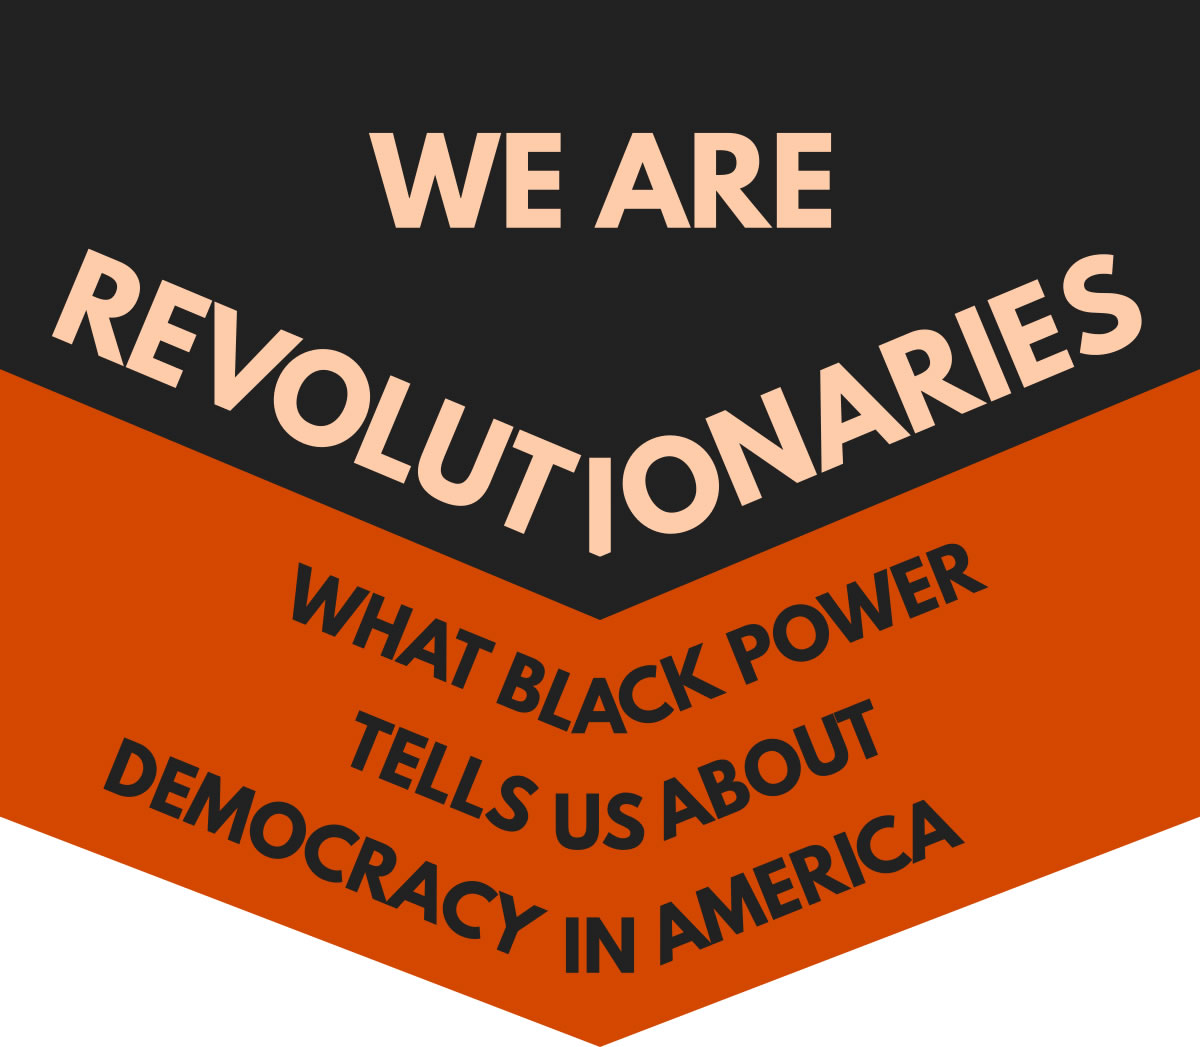 We Are Revolutionaries image